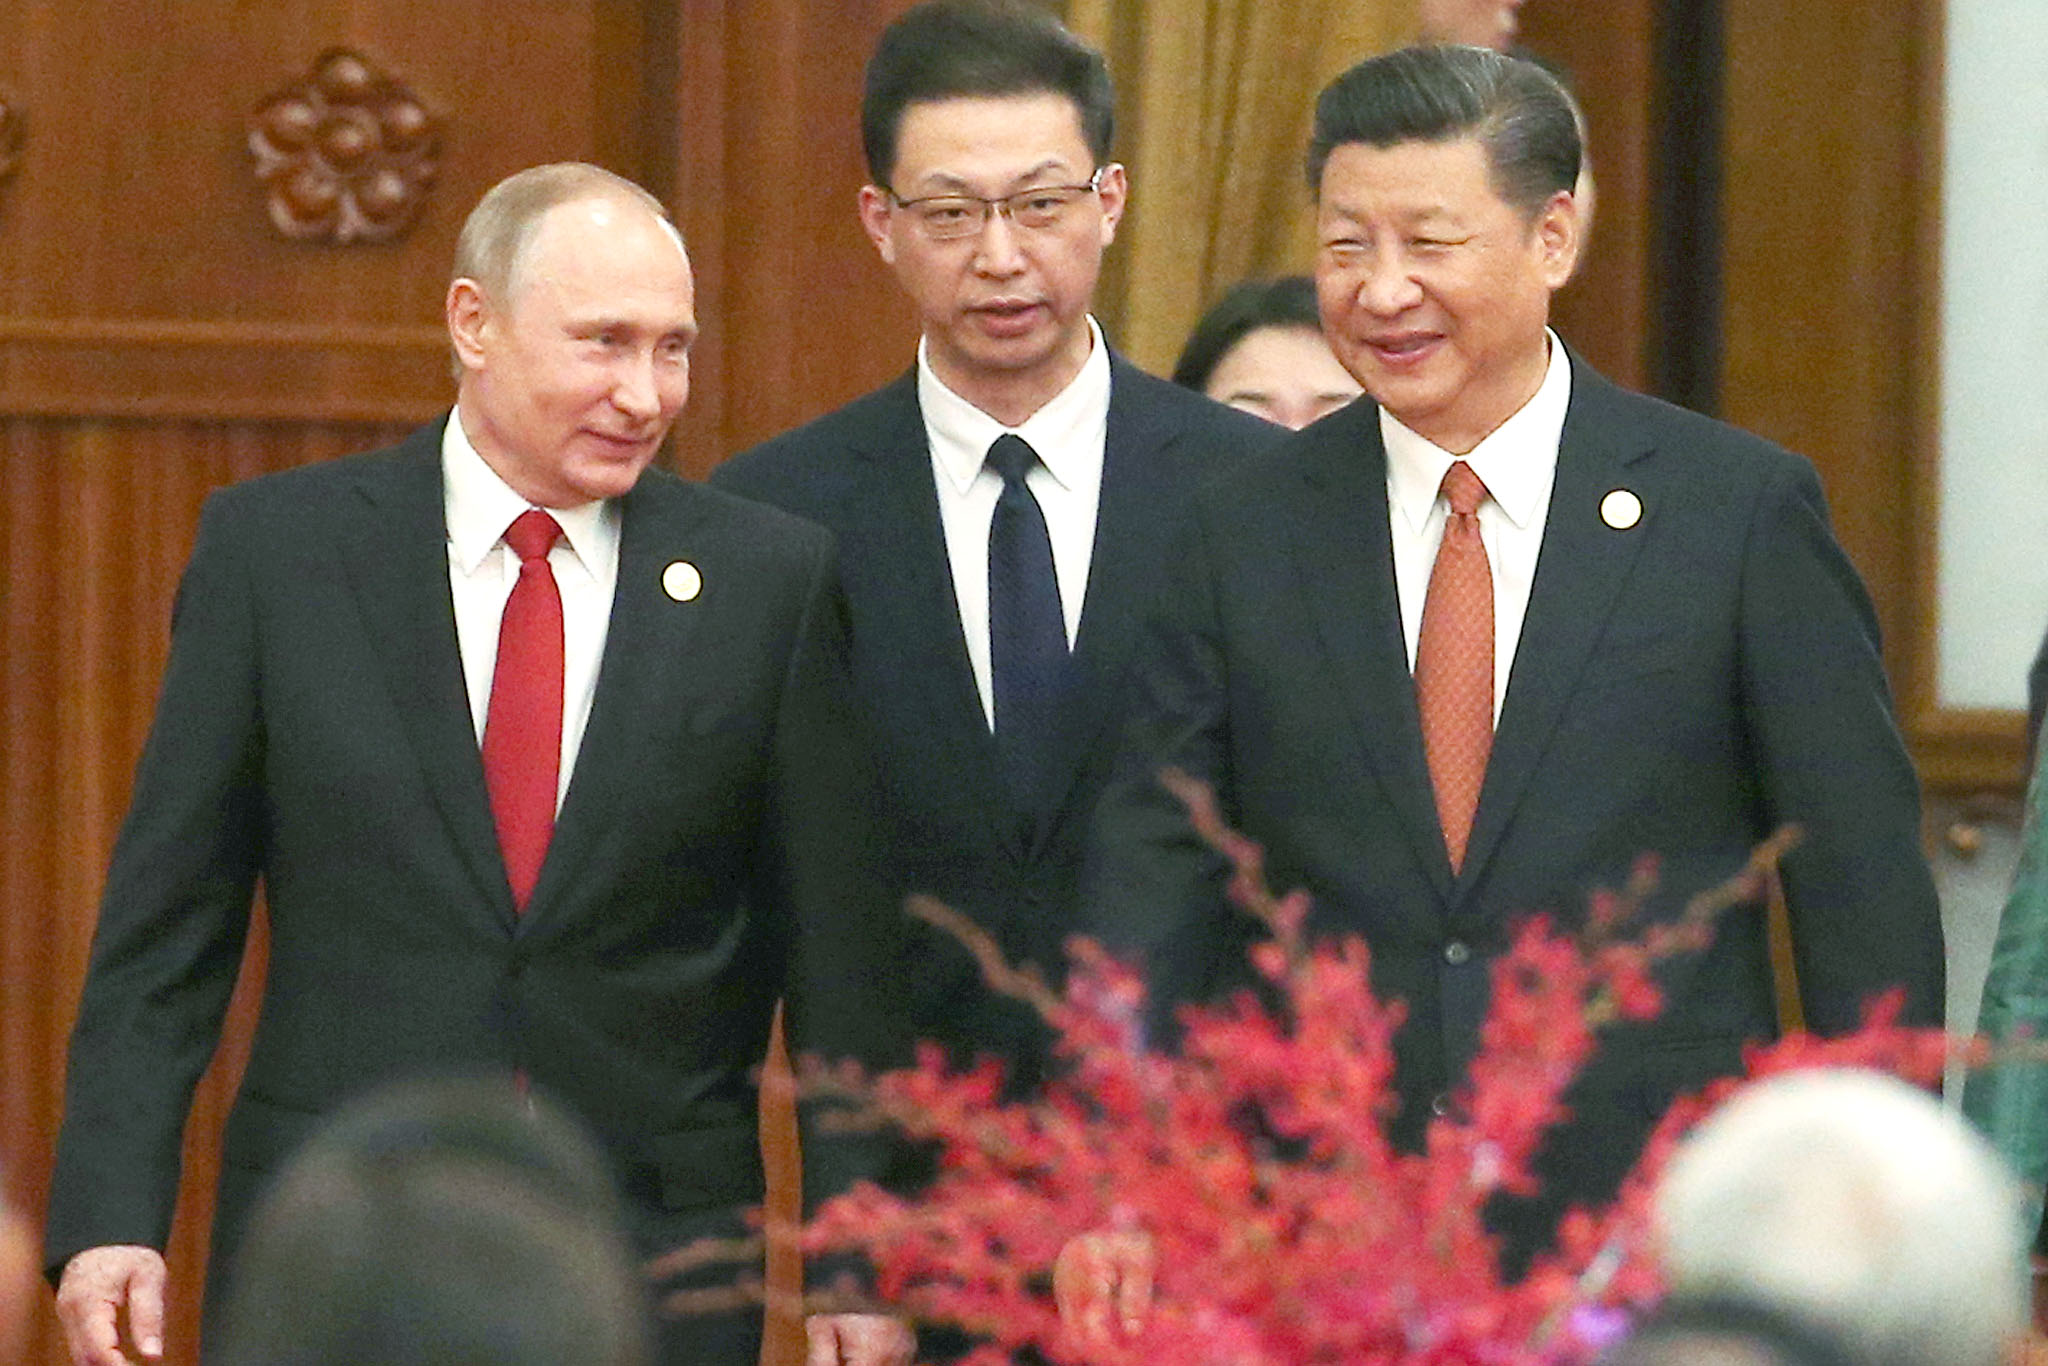 China's Xi says Silk Road plan to build new type of world order